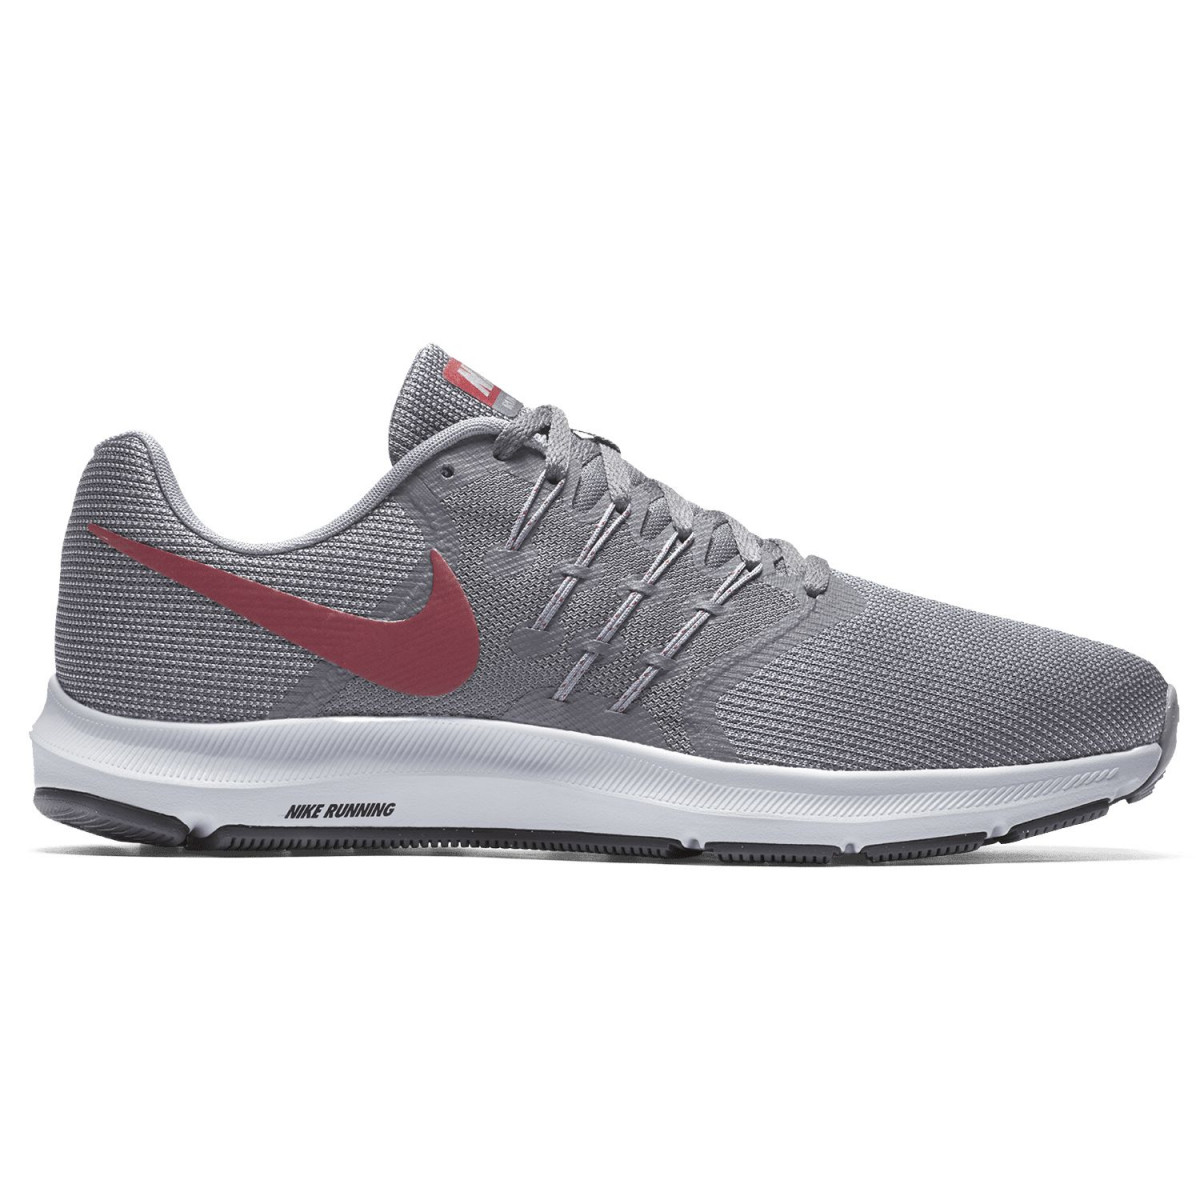 248ddc307ac Zapatillas Nike Run - Nike hasta 35% OFF - Rebajas